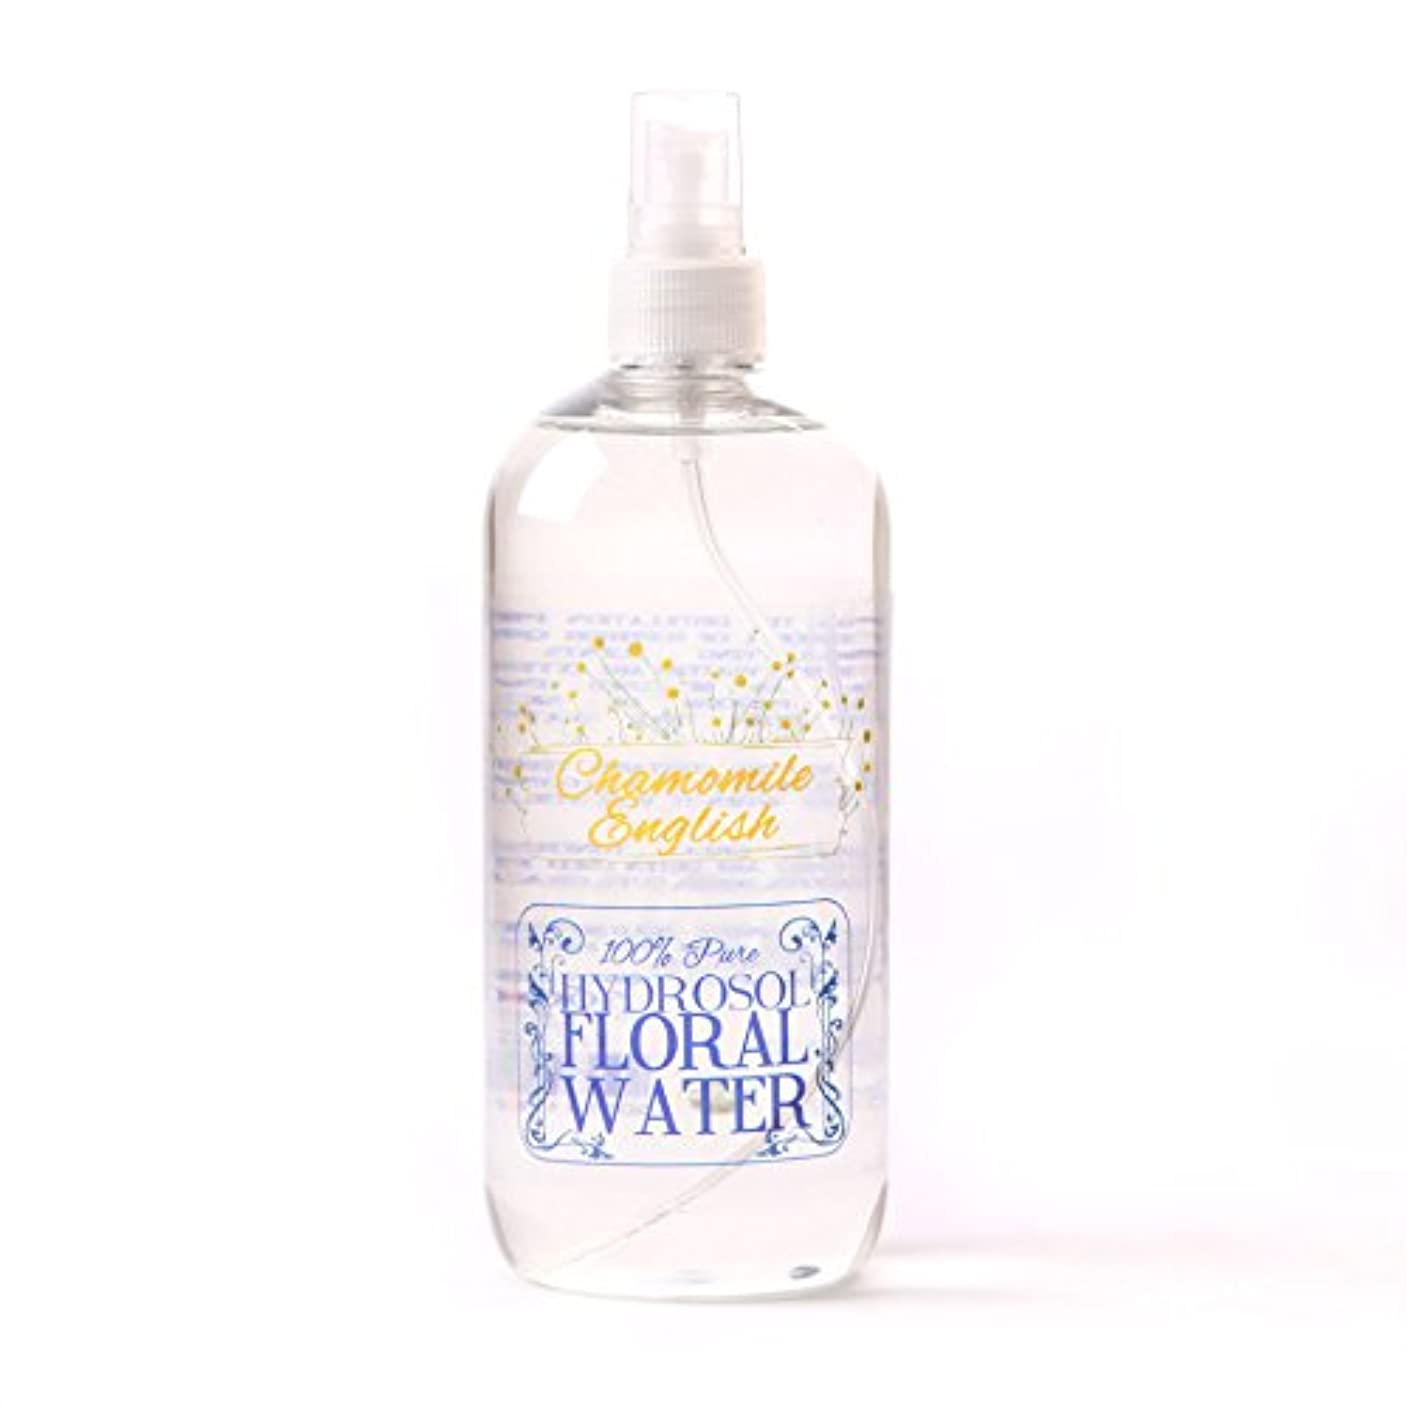 農場影響を受けやすいです電気陽性English Chamomile Hydrosol Floral Water With Spray Cap - 500ml